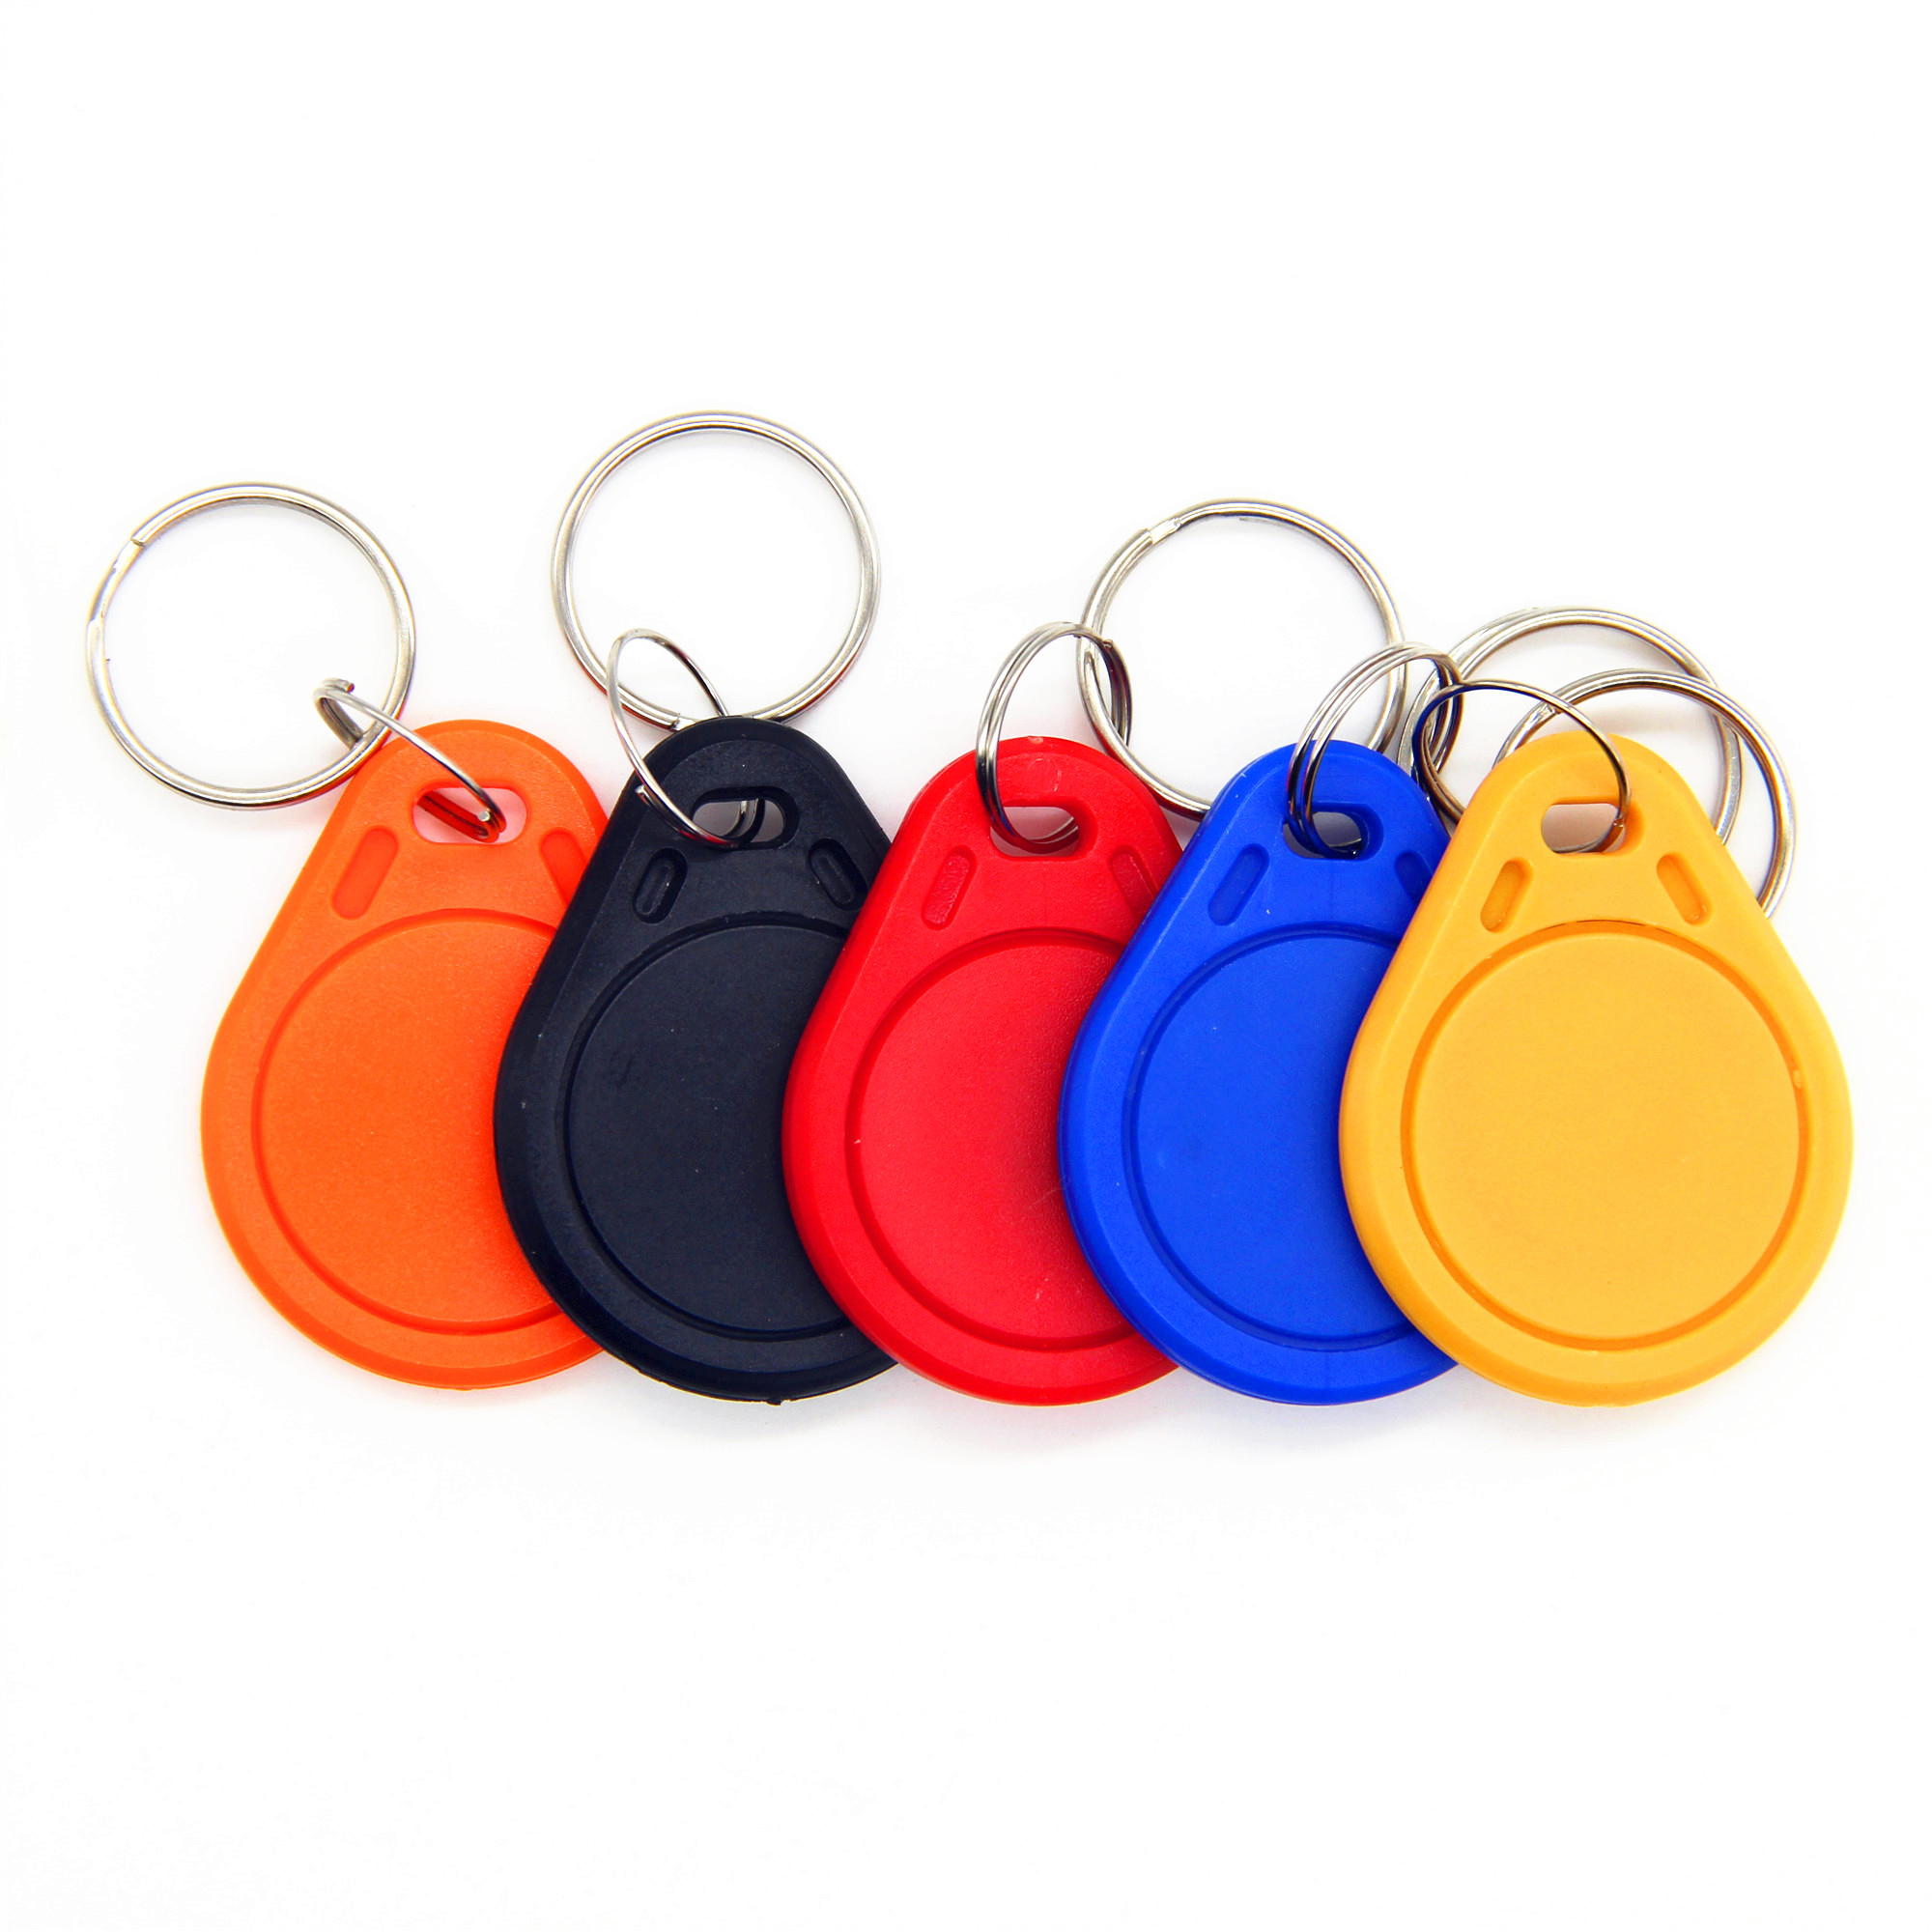 1Pcs S50 Smart Card Contactless Proximity IC 13.56Mhz RFID Key Fob Wrist Band Card Keyfob Token Tag For Access Control System